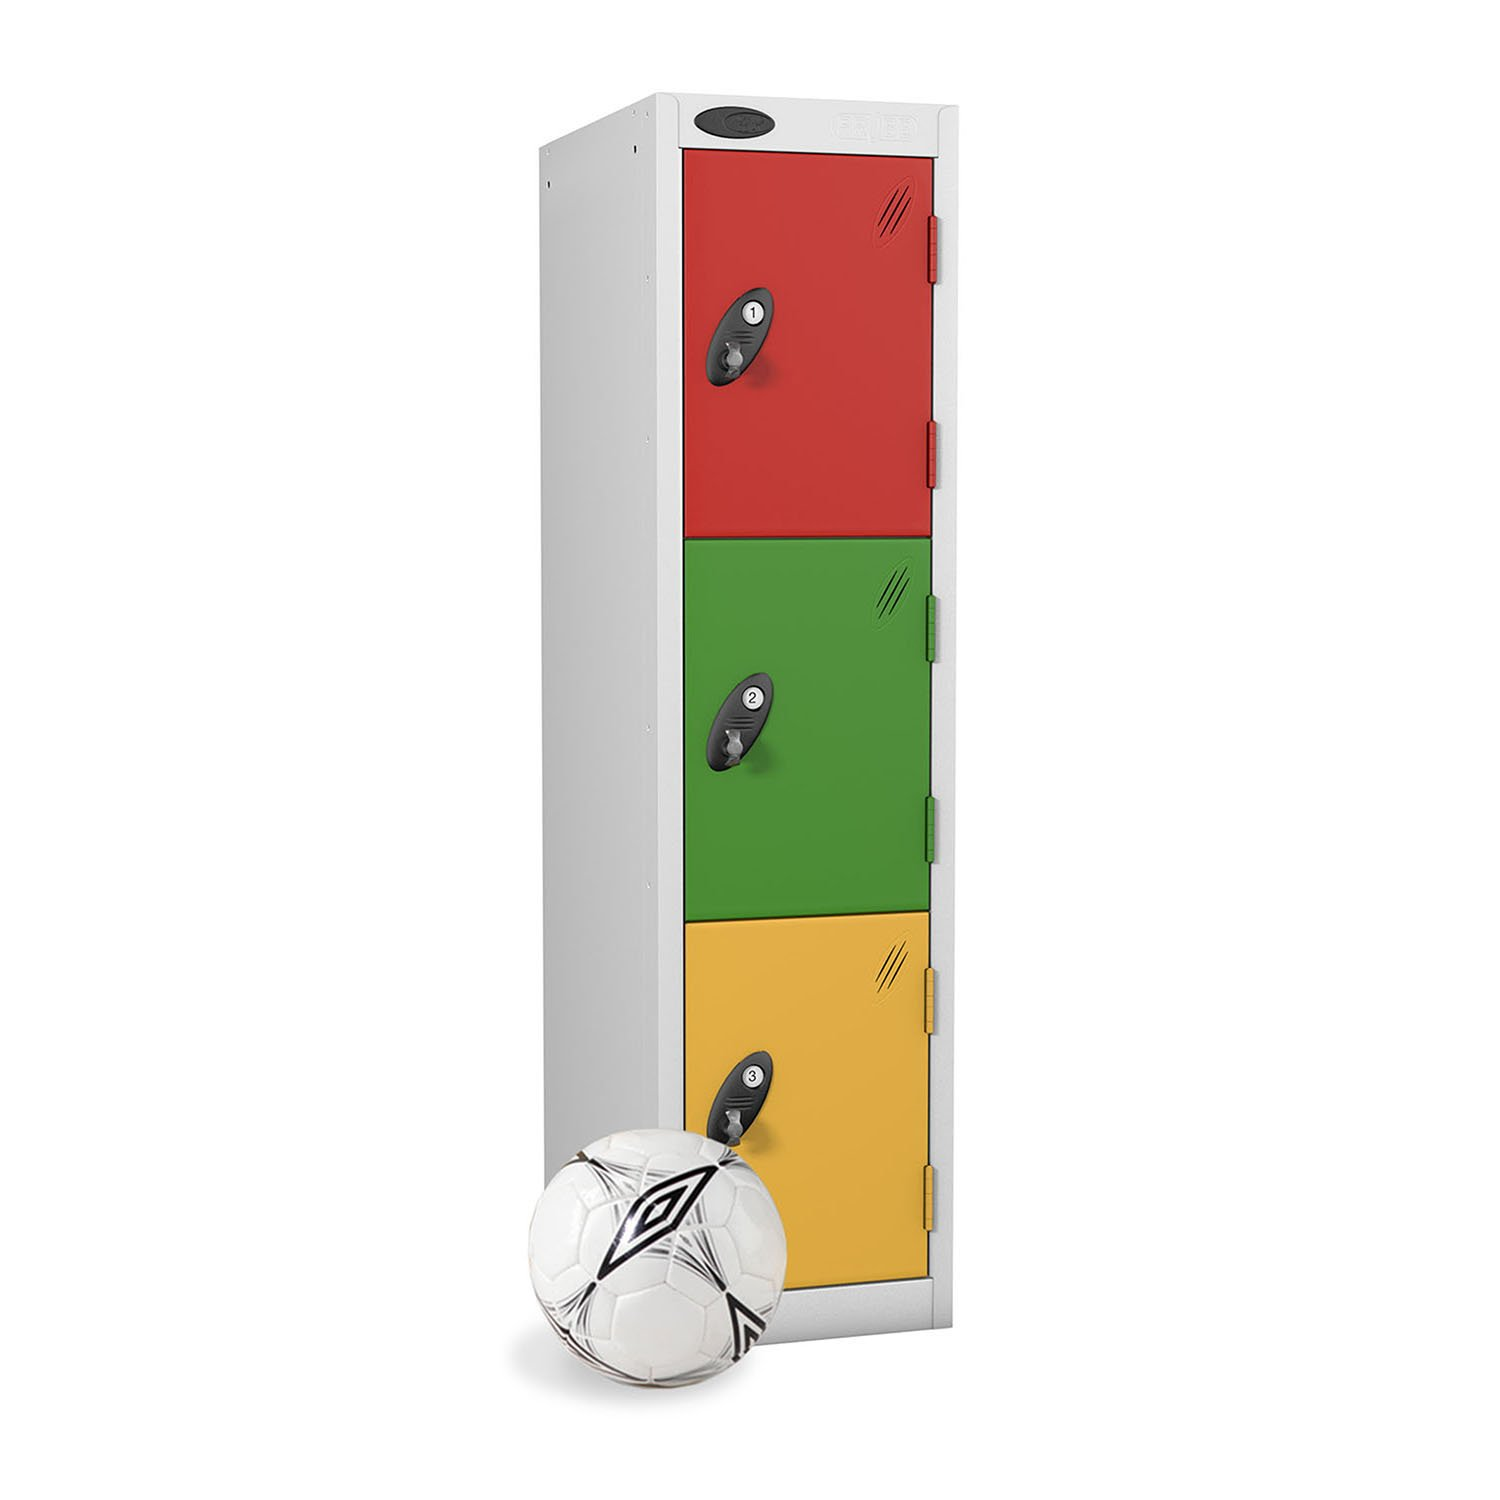 Probe 3 doors low locker in red, green and yellow colour